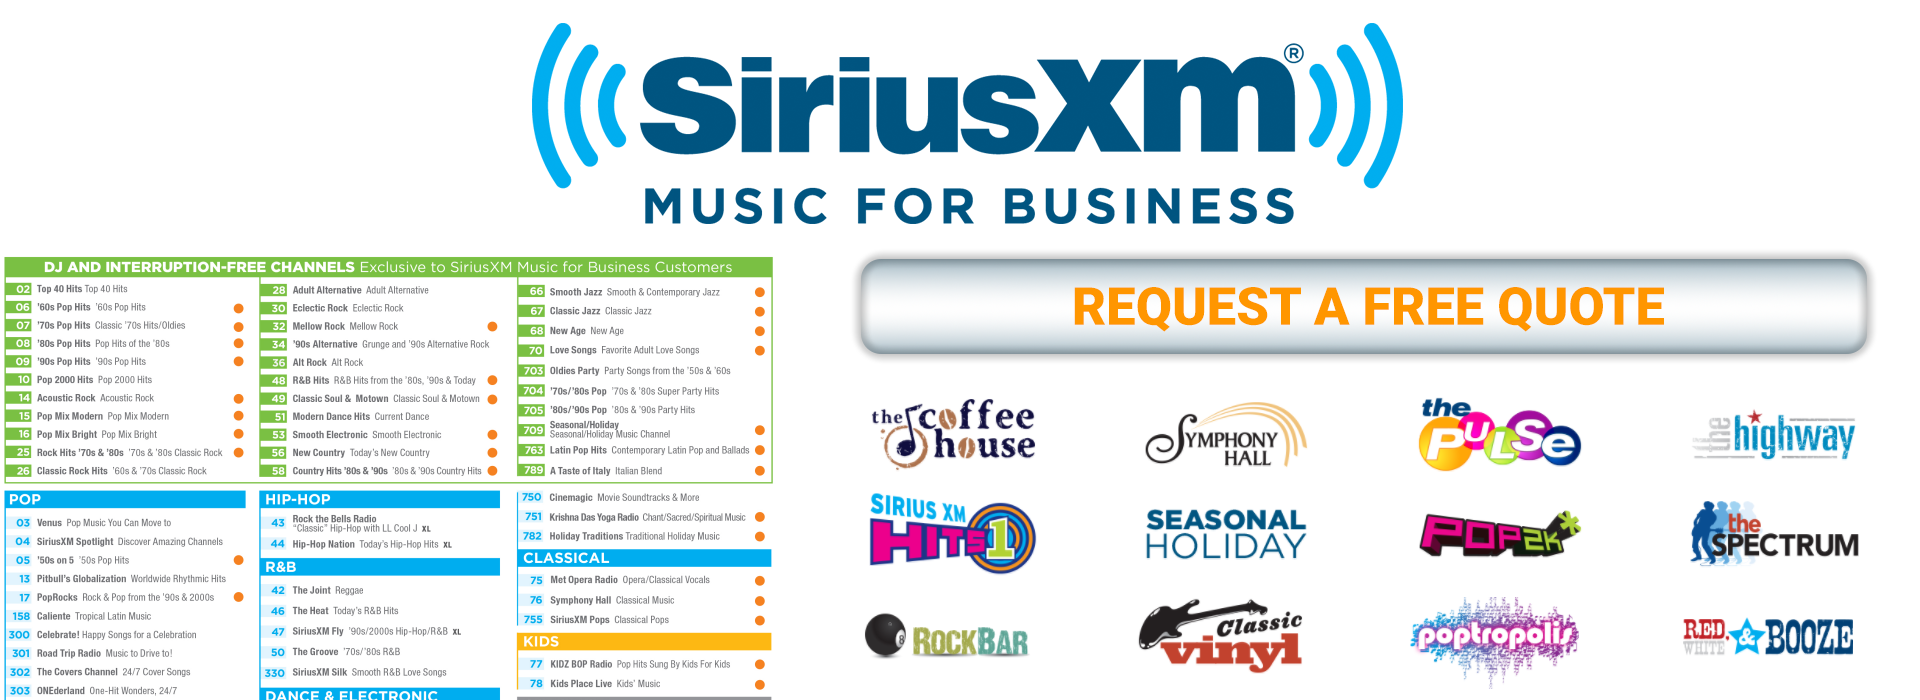 SiriusXM-Music-for-Business-Free-Quote-Sonu-Media